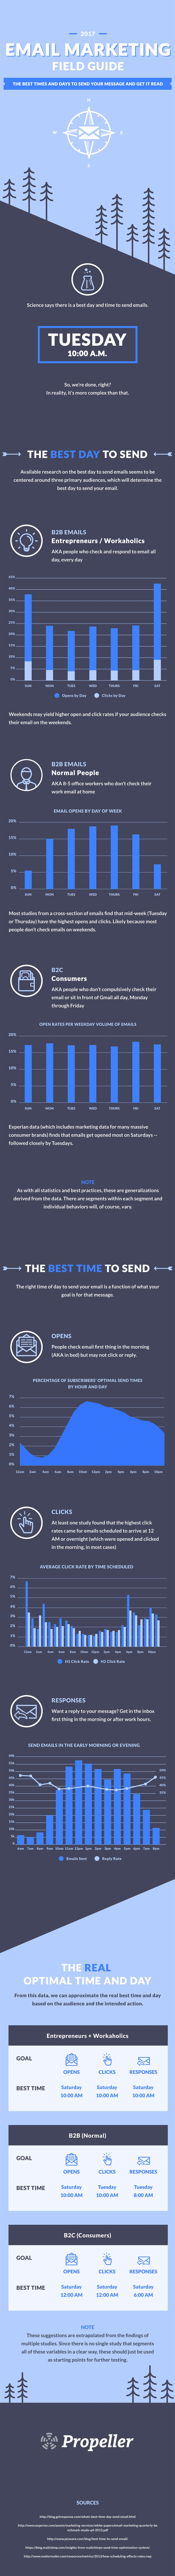 The Best Days and Times to Send Your Email (Infographic)